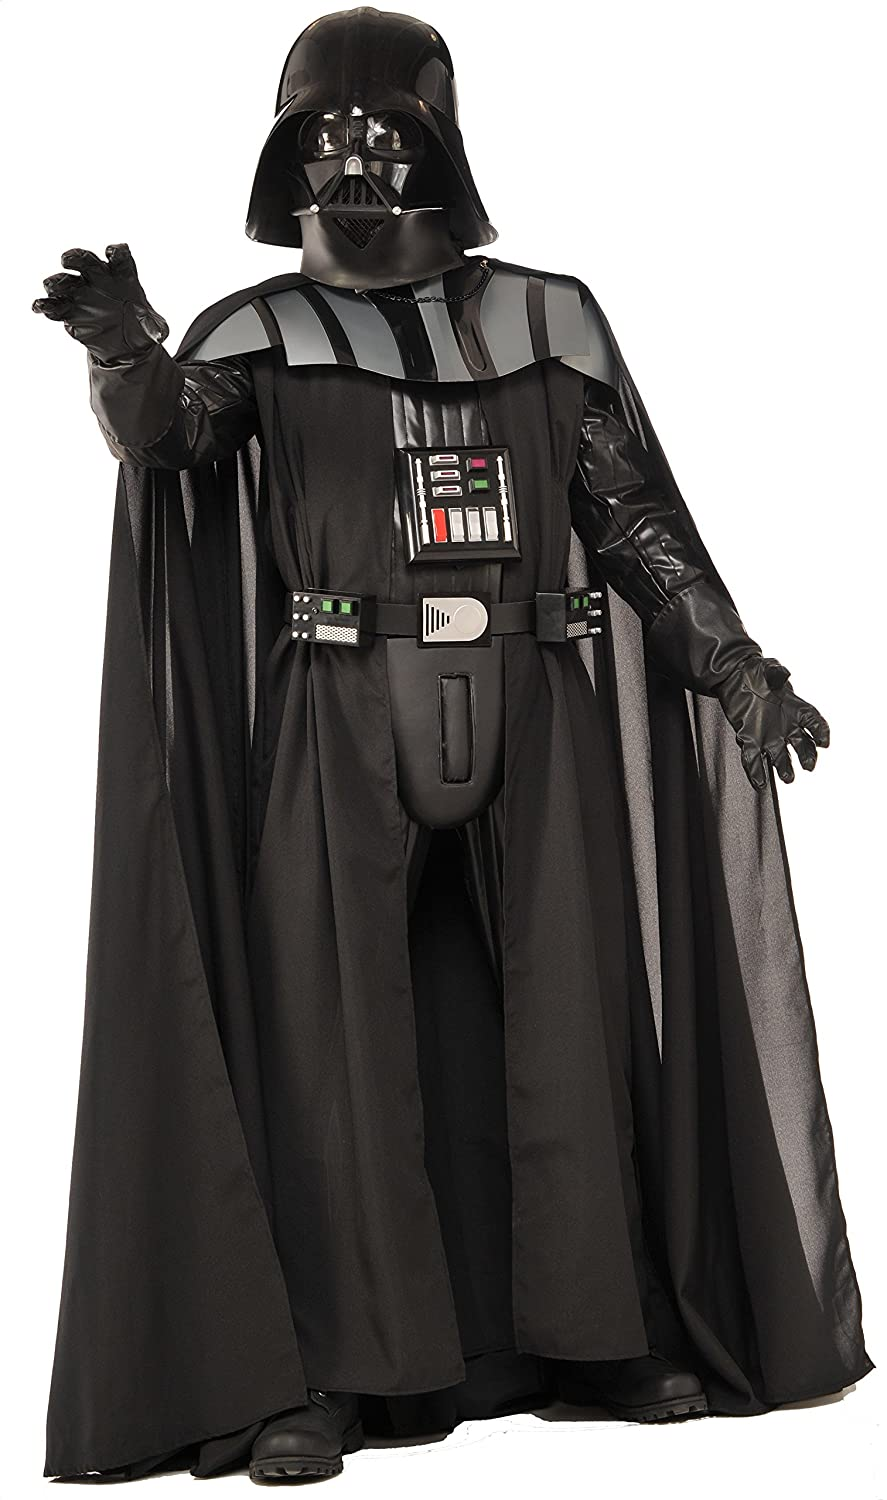 amazoncom rubies costume mens star wars collector supreme edition darth vader costume clothing - Halloween Darth Vader